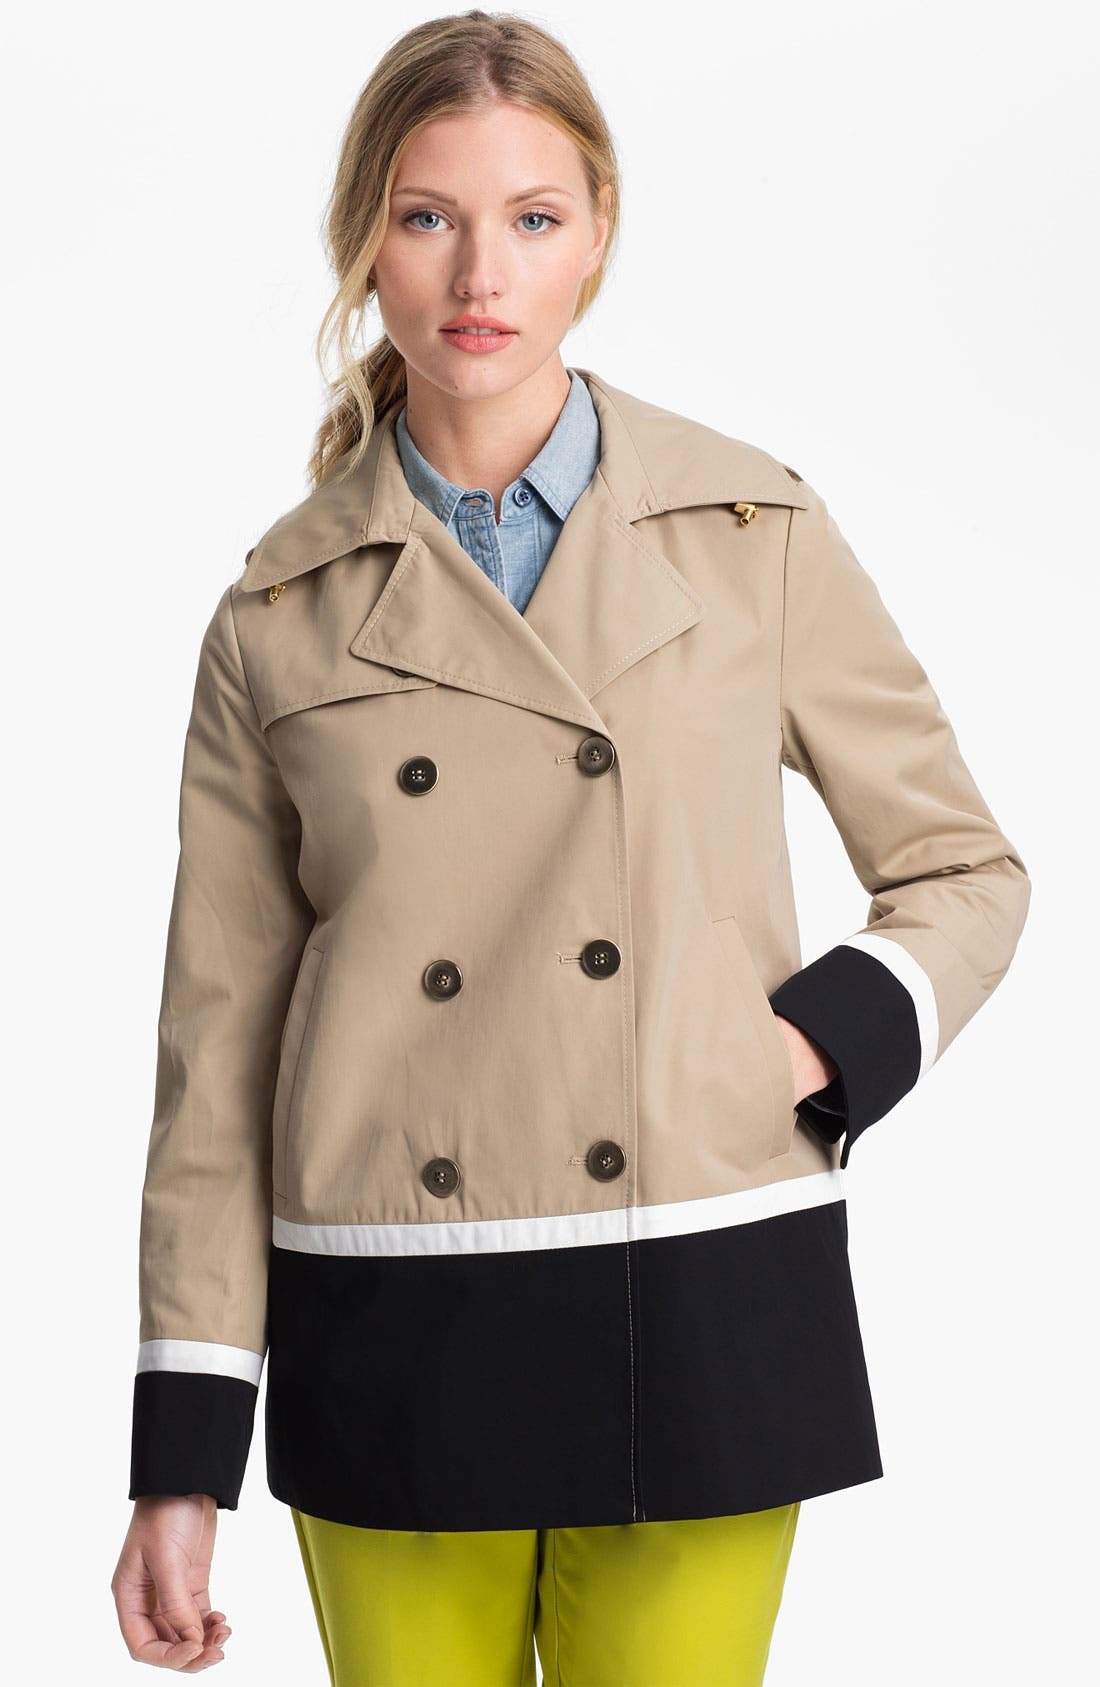 Alternate Image 1 Selected - Ellen Tracy Colorblock Peacoat (Petite) (Online Only)